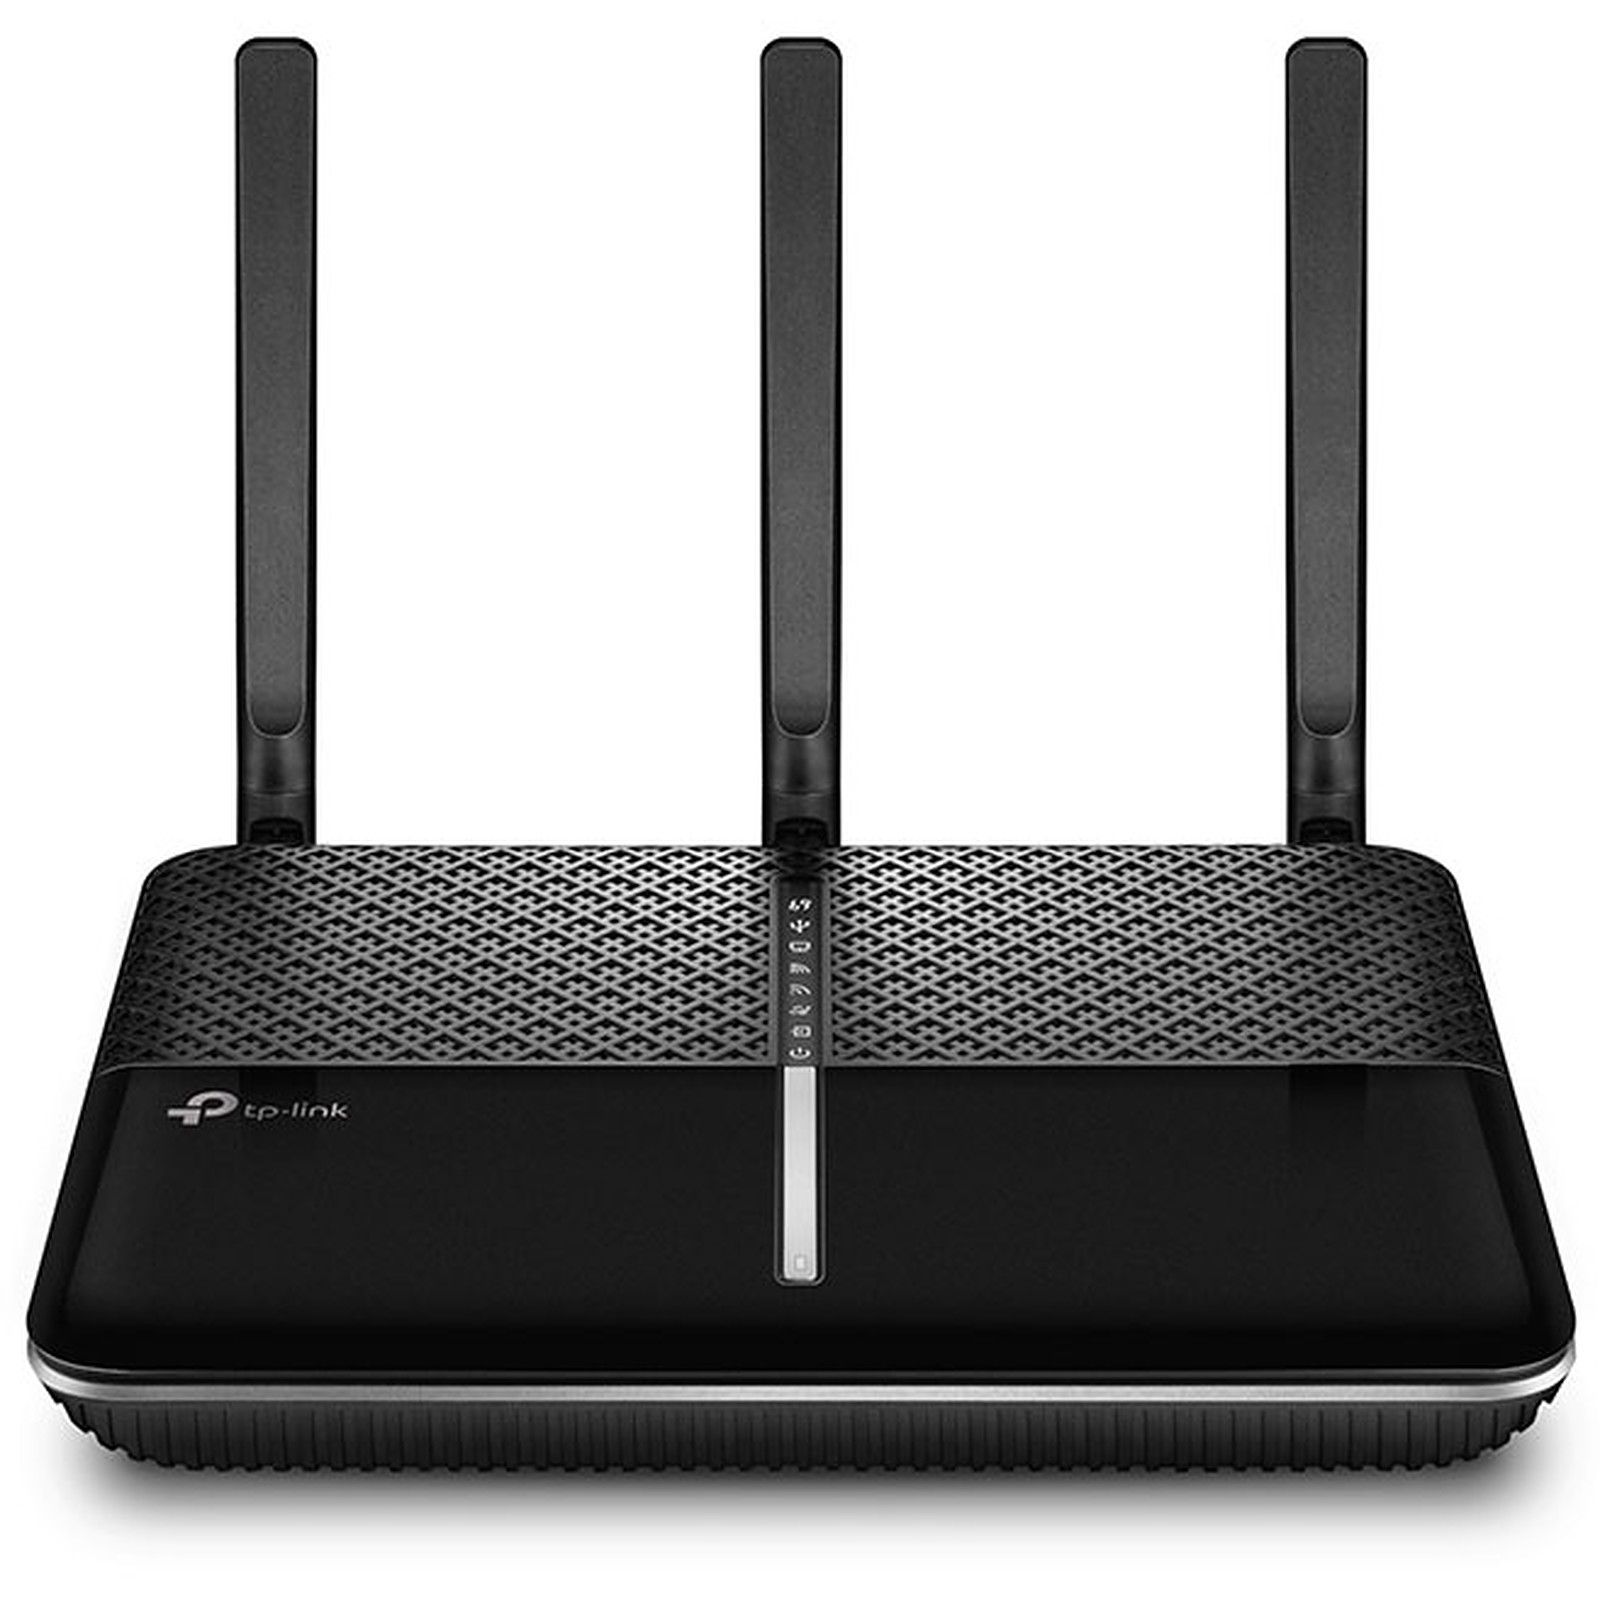 >Modem Routeur WiFi Dual Band AC1600 Lan Gigabit TP-LINK Archer VR600, informatique Reunion 974, Futur Réunion informatique